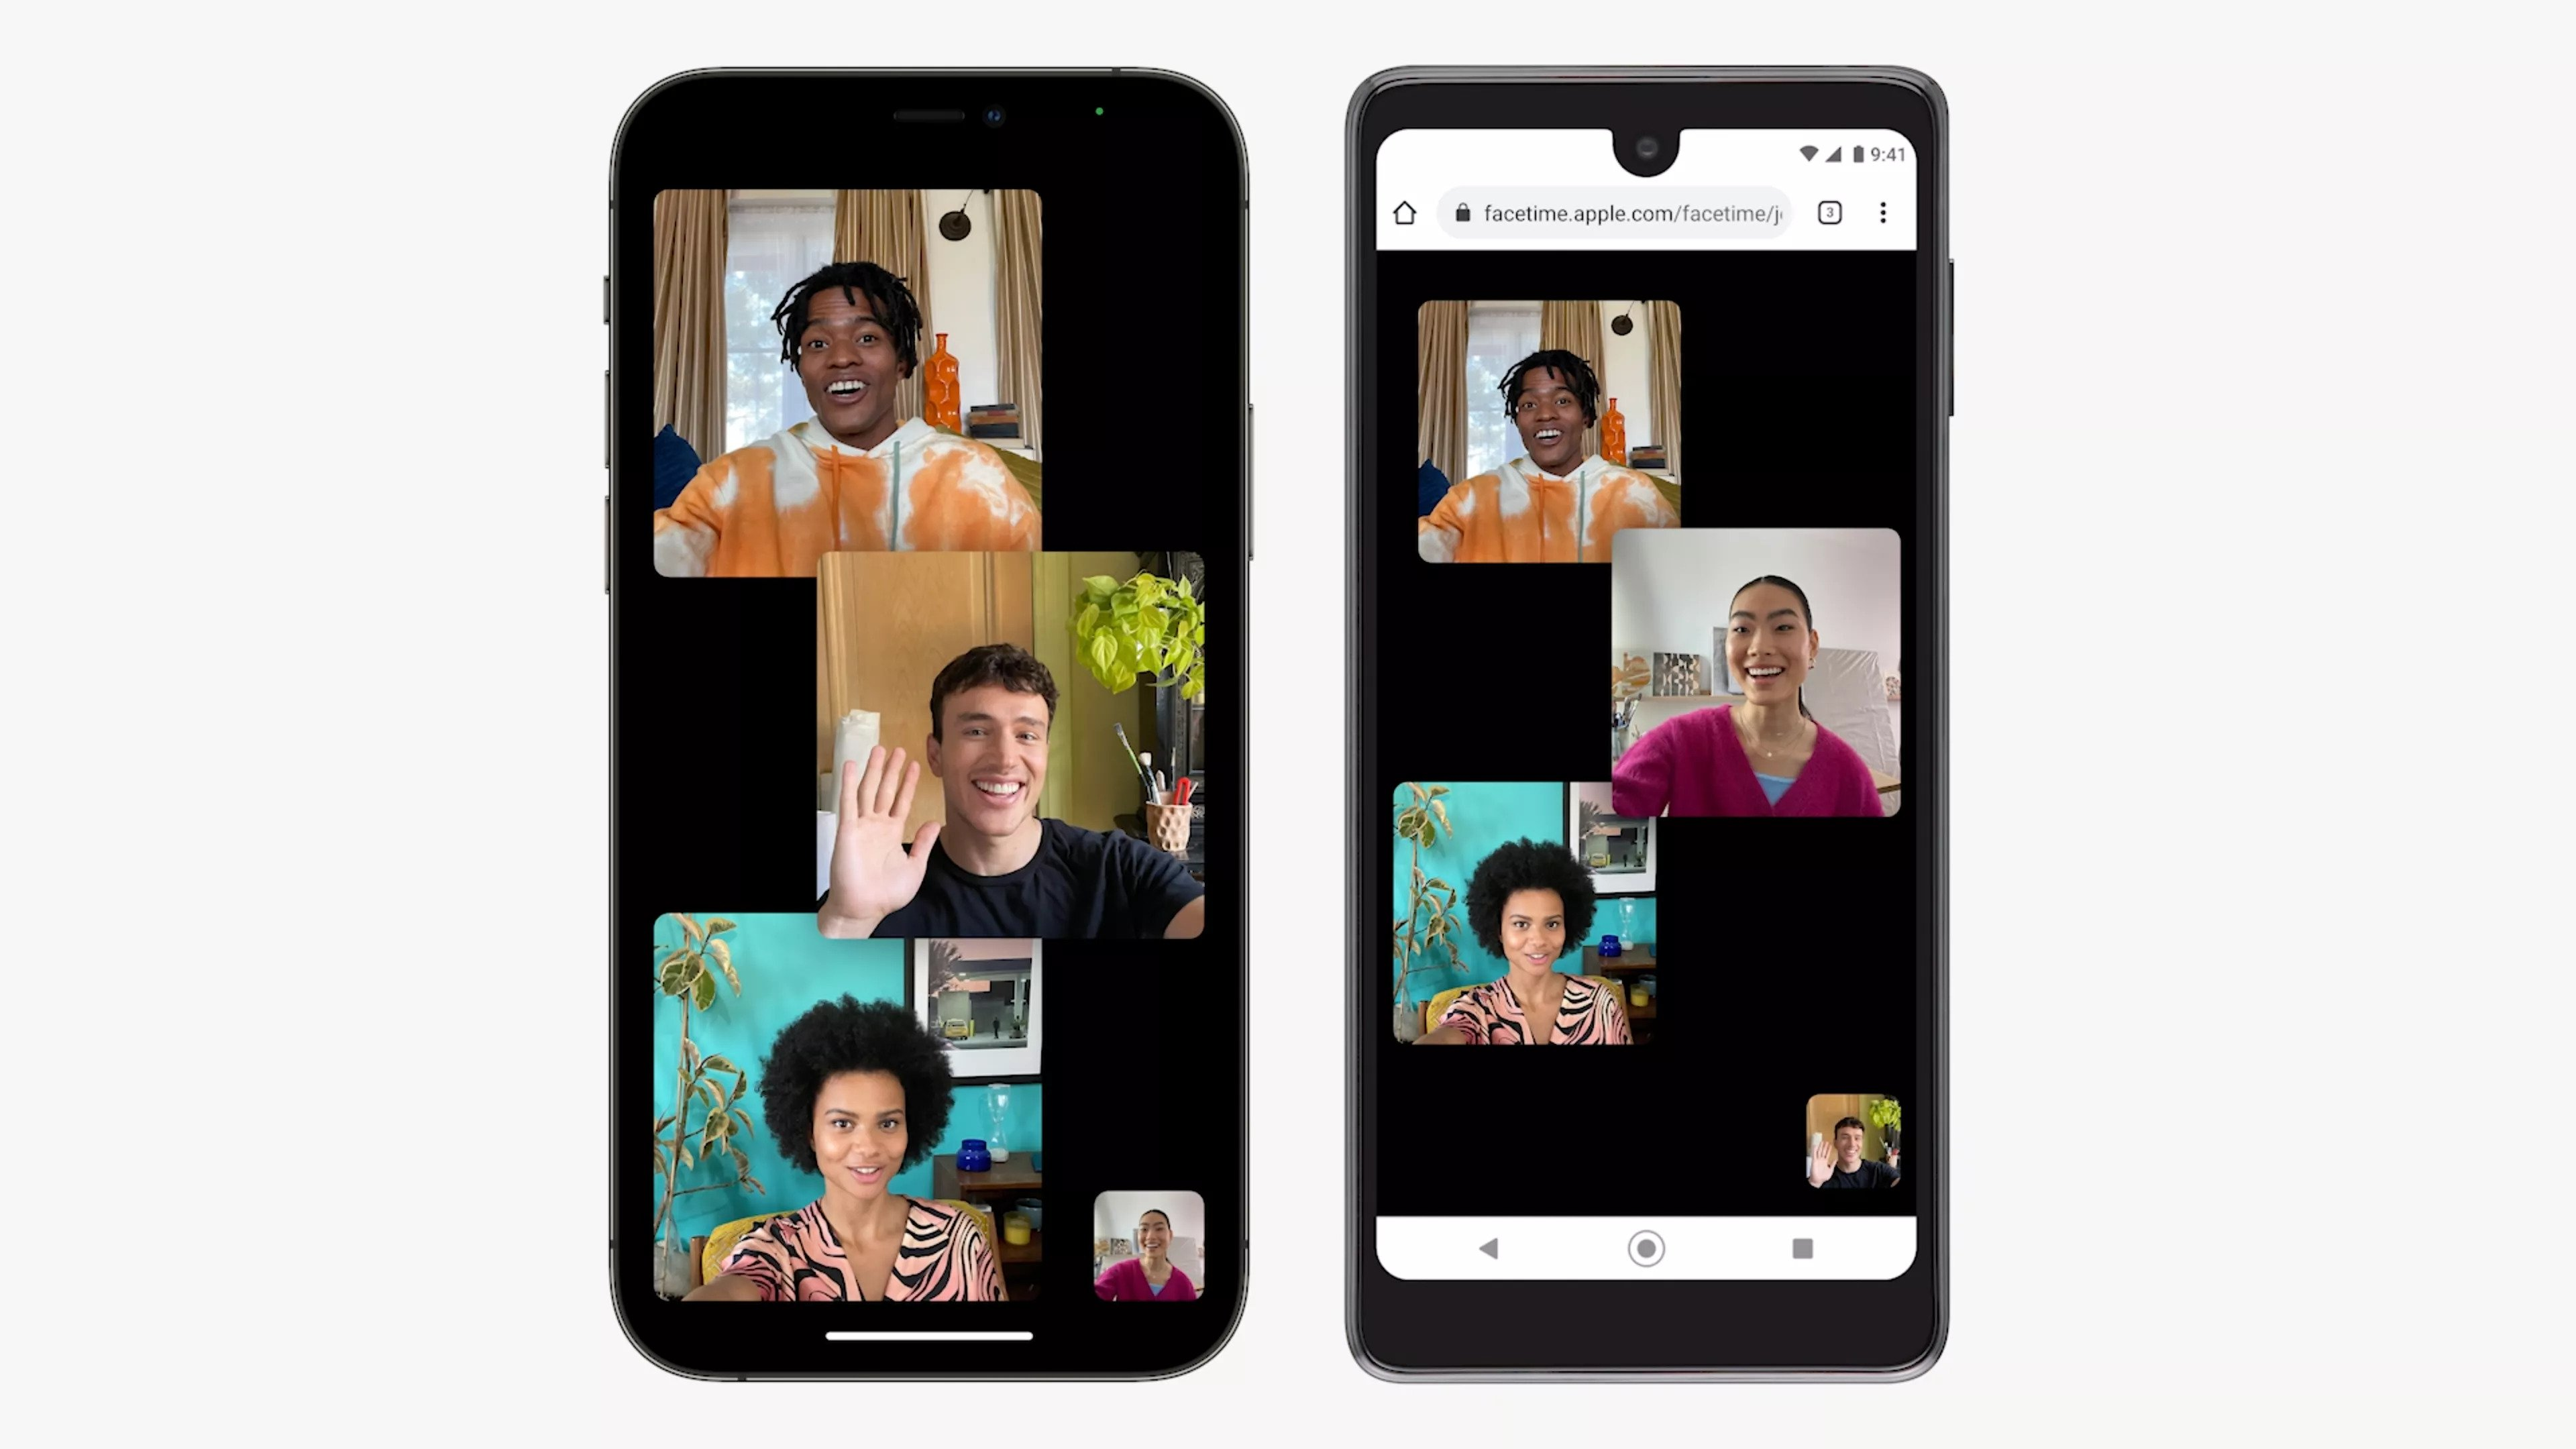 You no longer need an iPhone to FaceTime. How to use it on Android or Windows